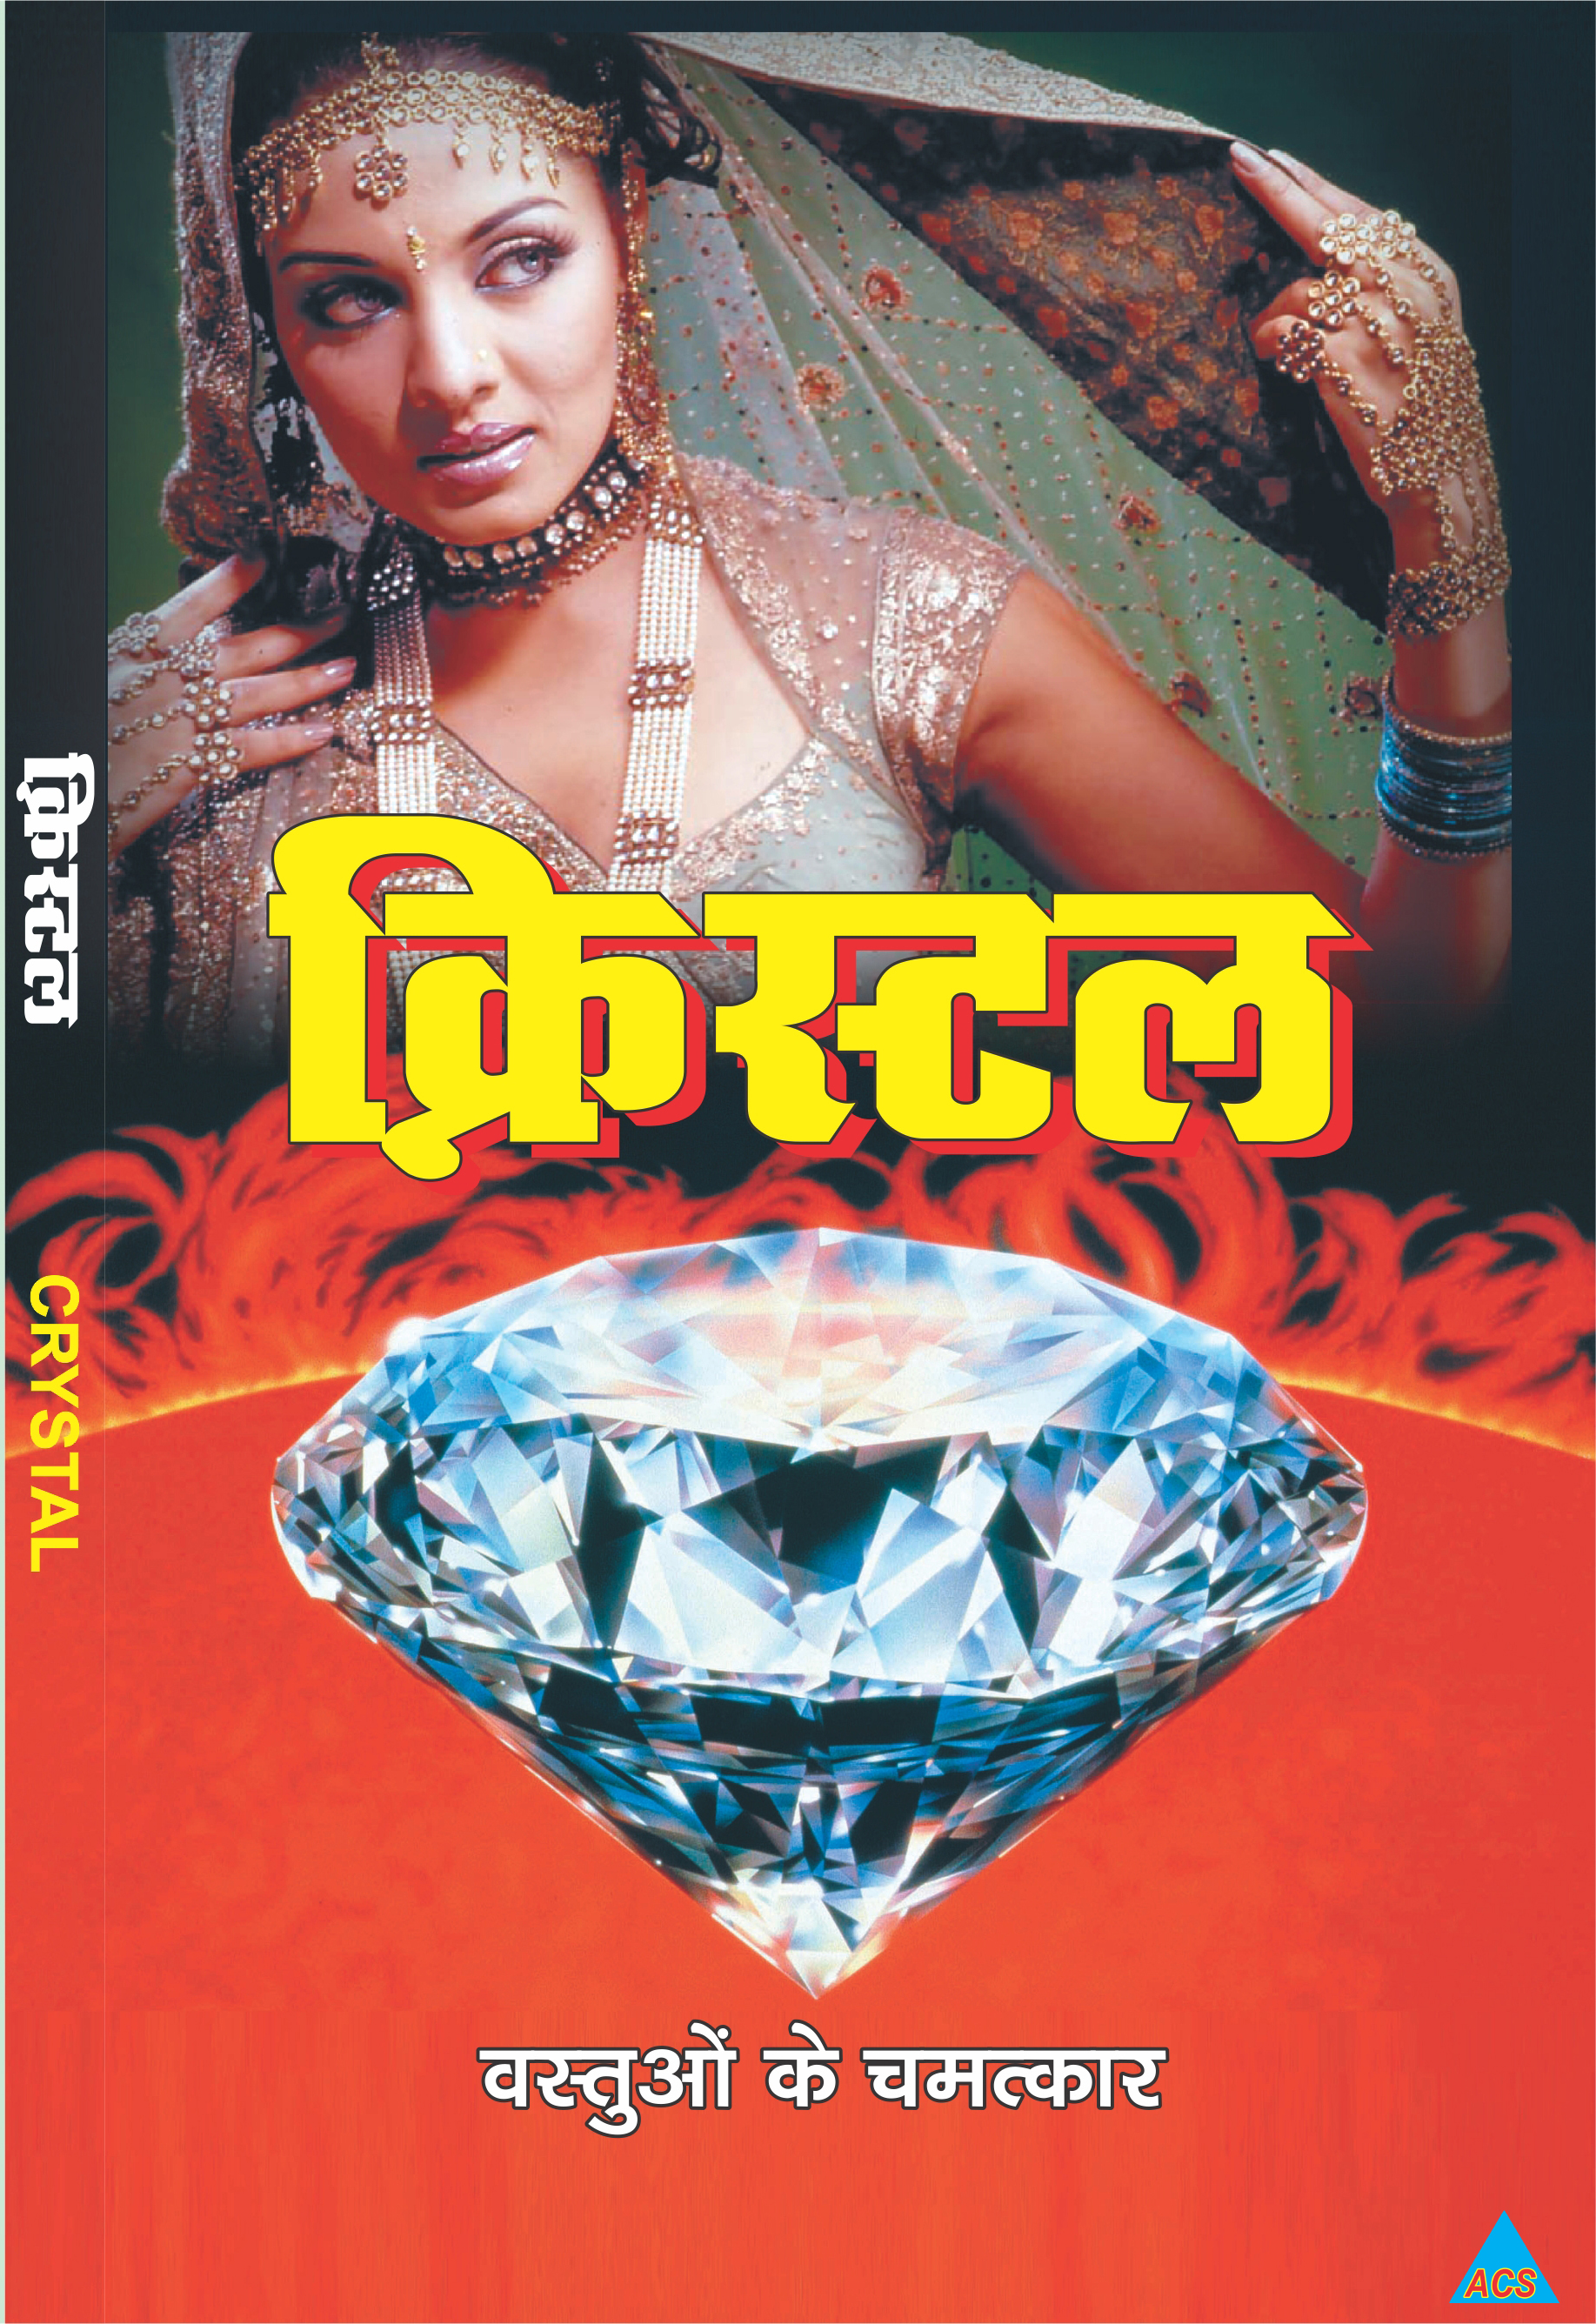 Crystal Joshi & Choudhary - Hindi  - 326